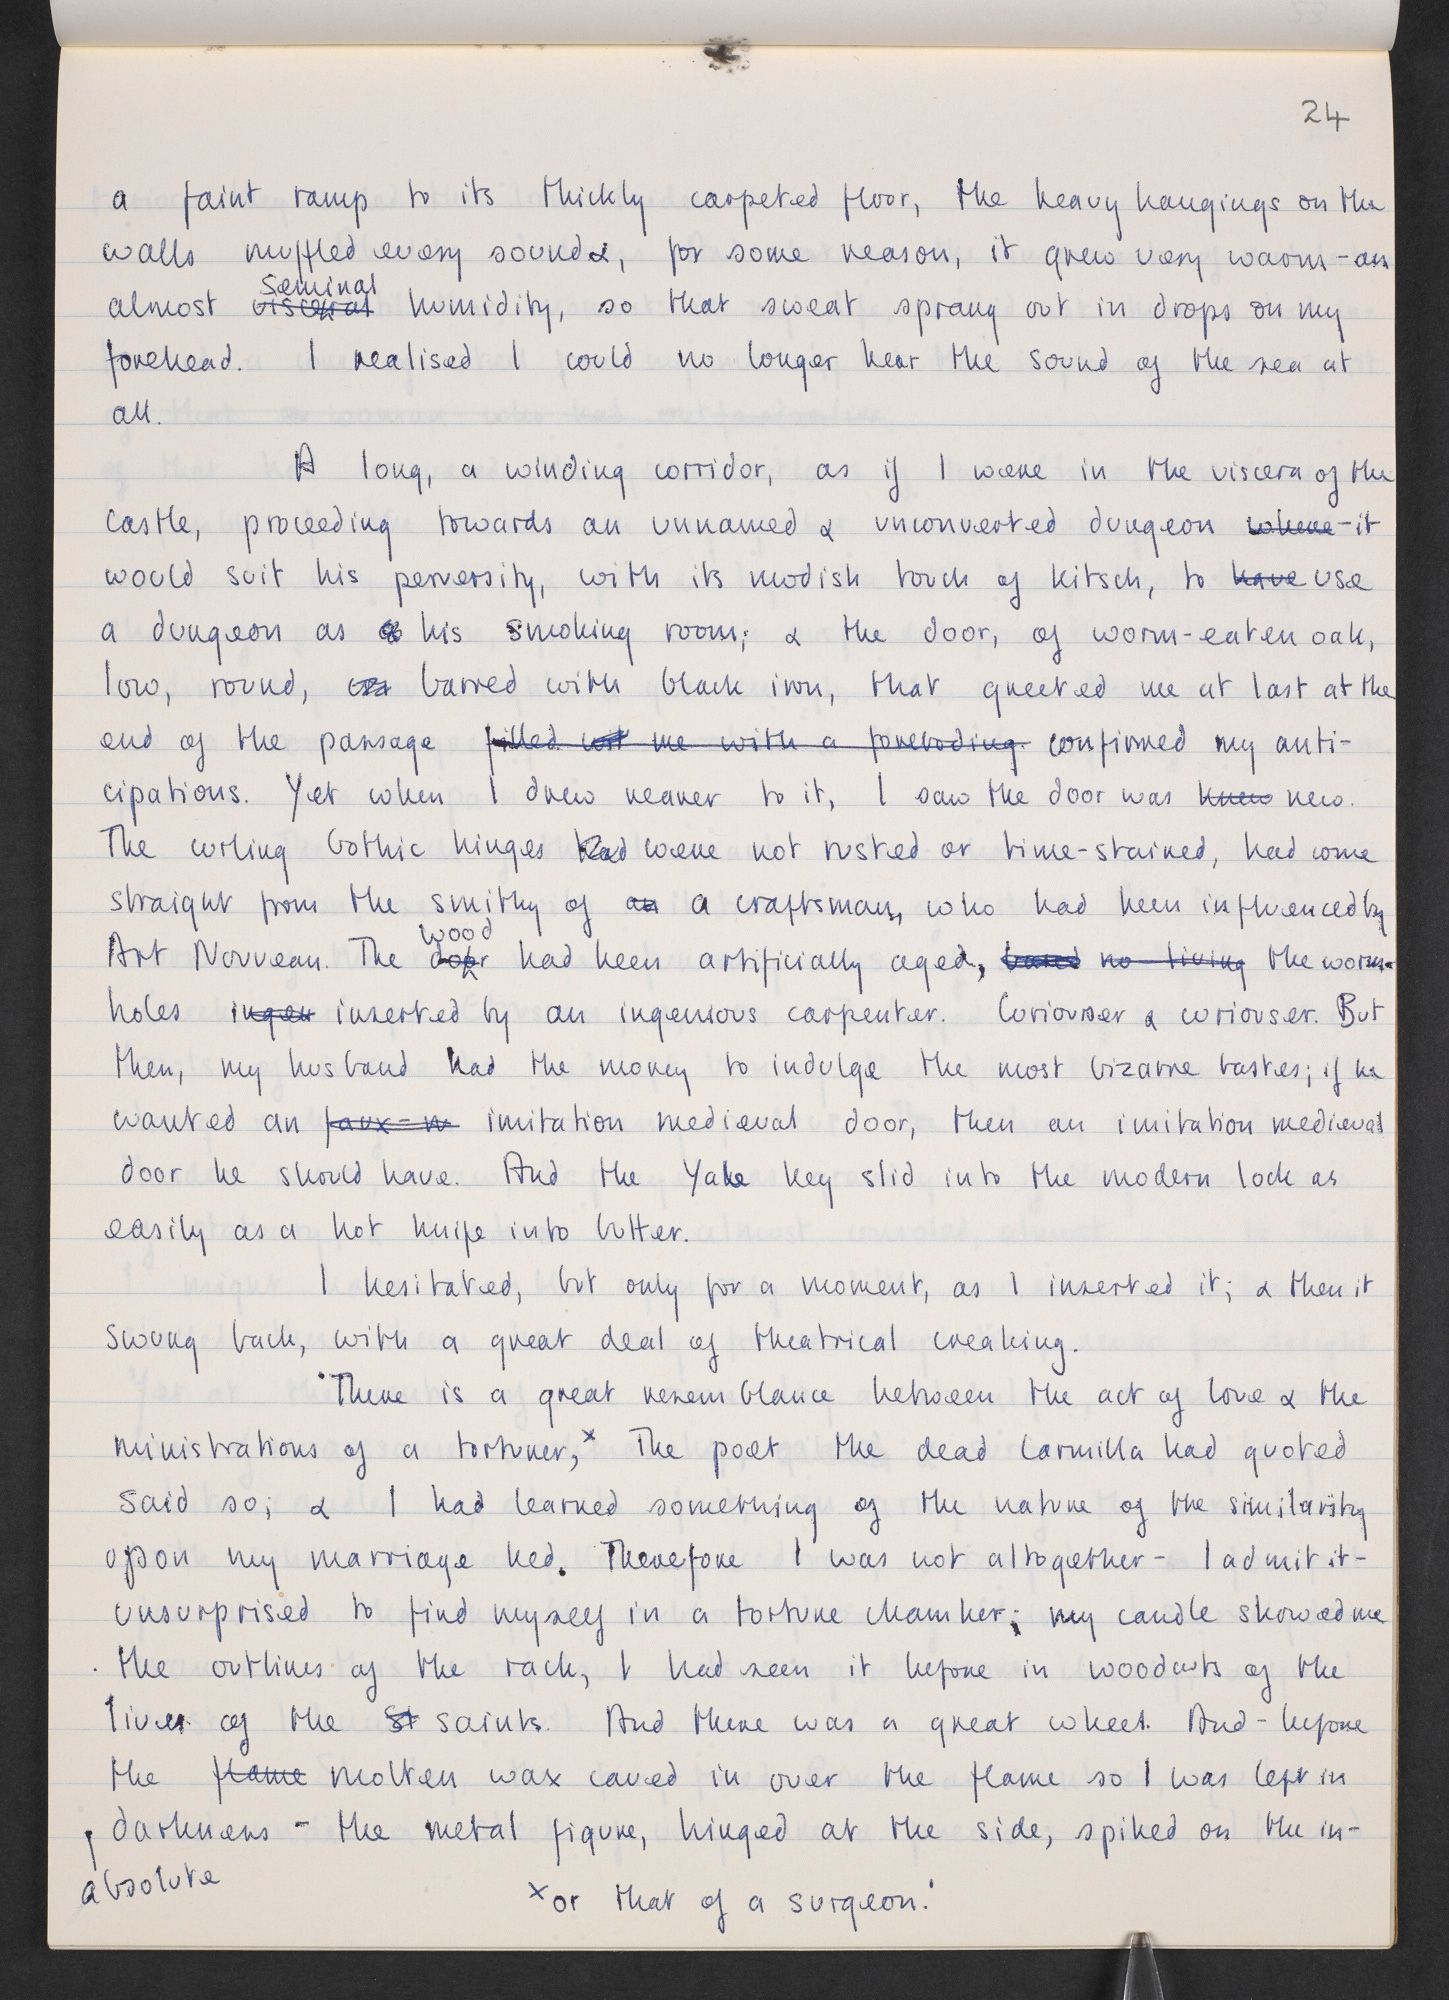 Manuscript notes and drafts of 'The Bloody Chamber' by Angela Carter